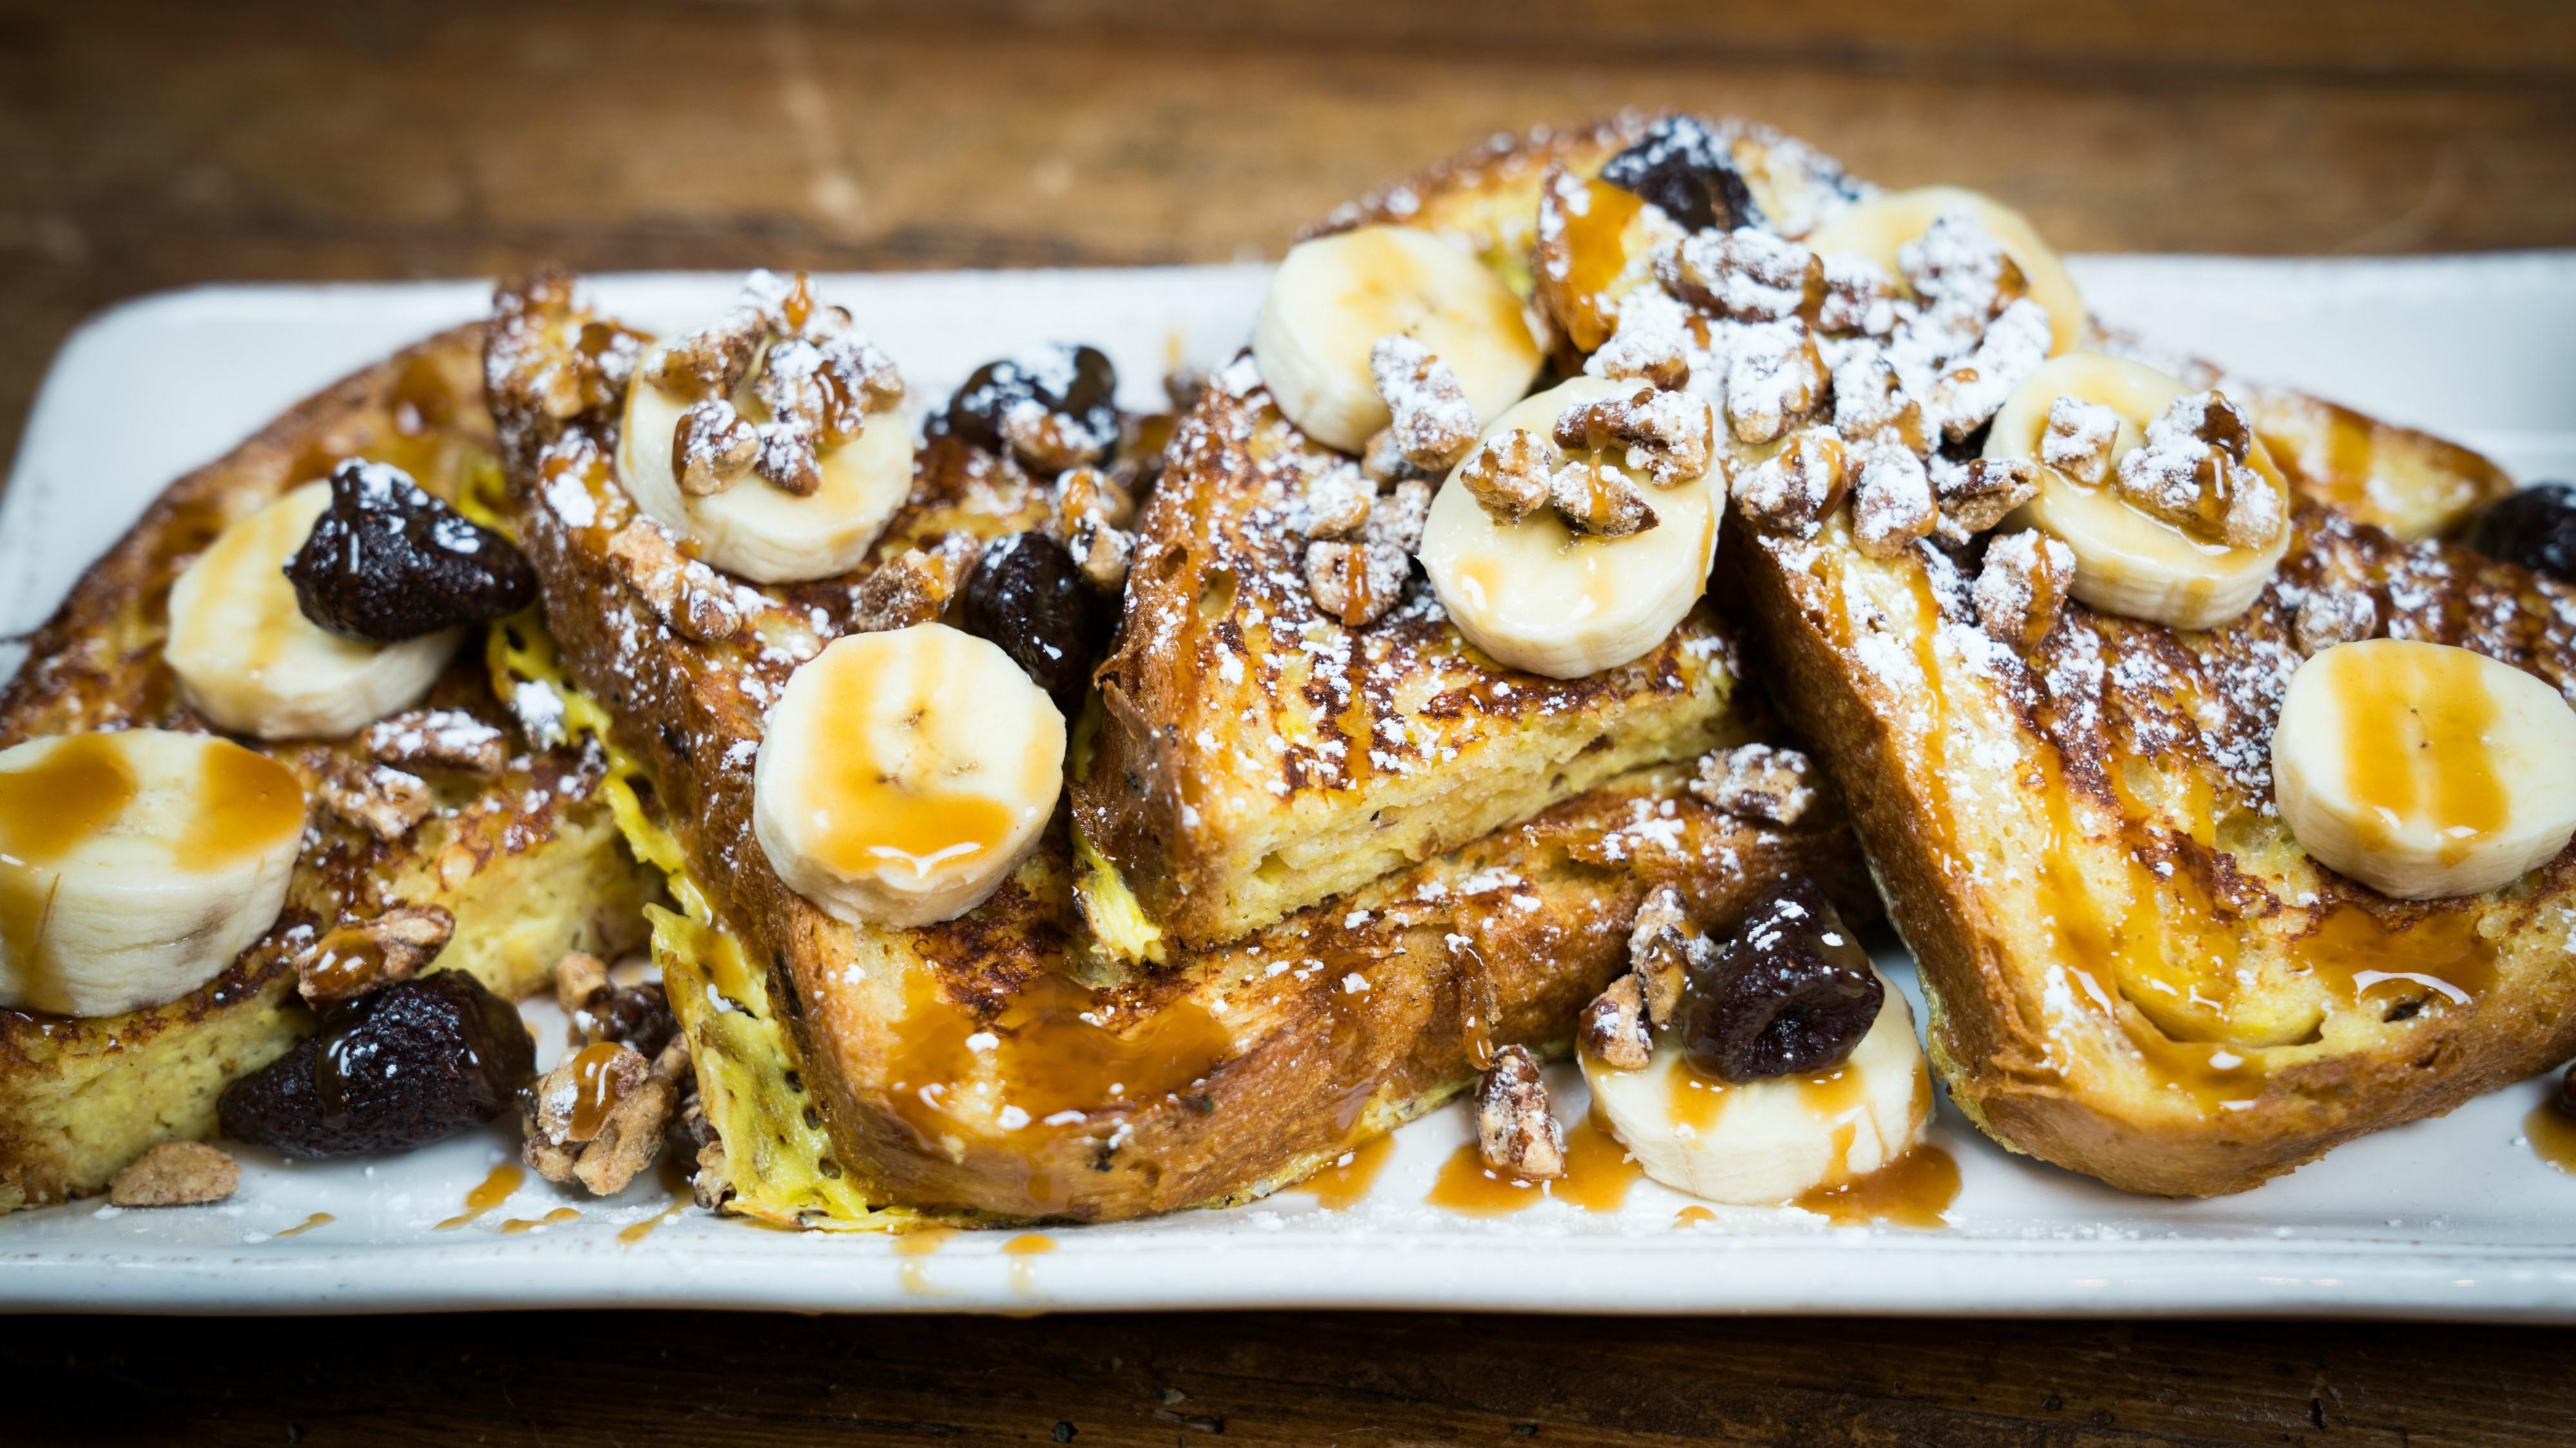 French Toast House-baked cinnamon raisin brioche with caramelized bananas, candied pecans, sun-dried strawberries, bourbon maple syrup at Tonto Bar & Grill